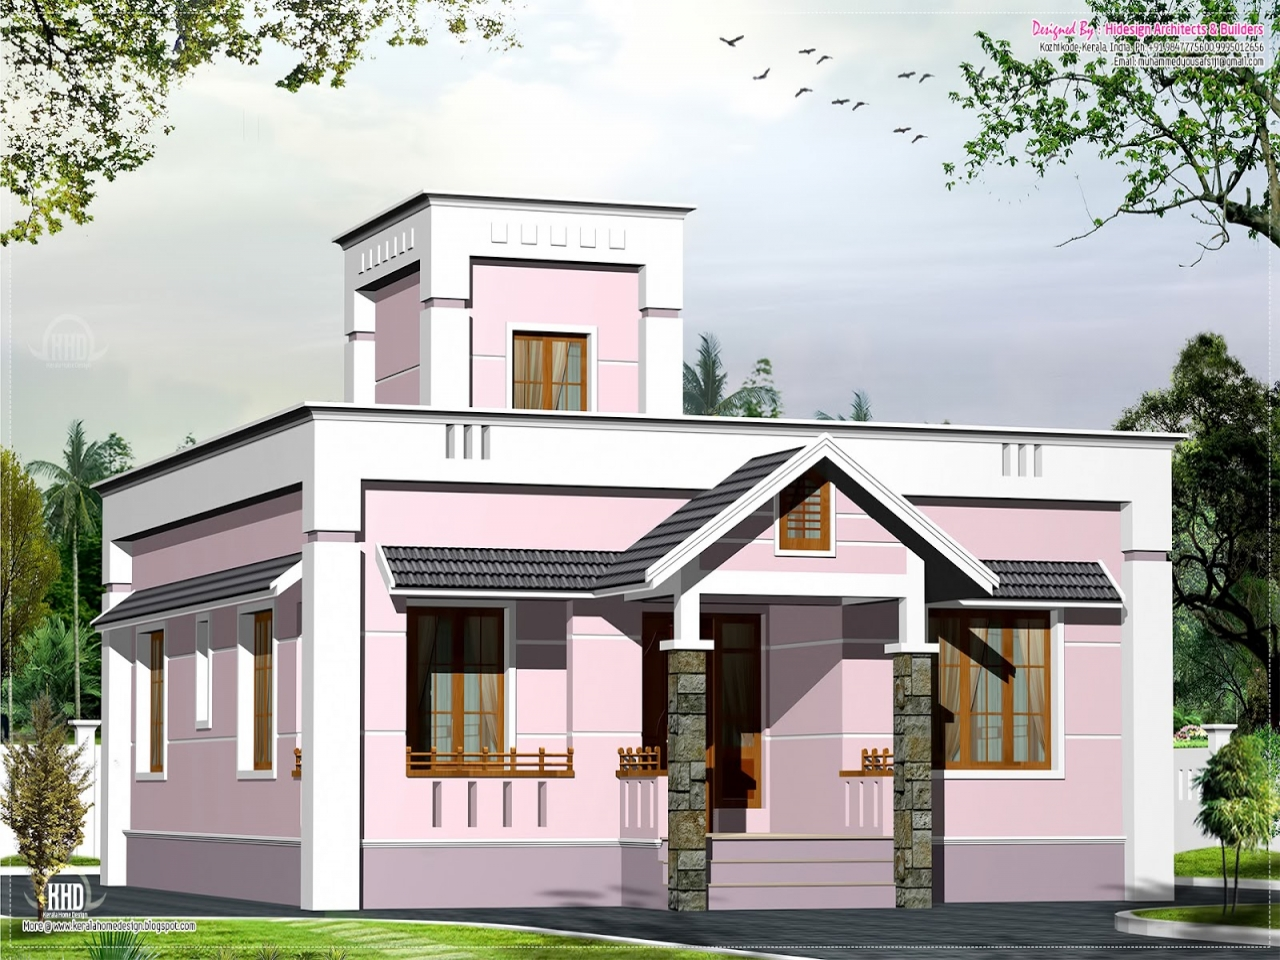 Small house floor plans and designs small villa house for Small villa house plans